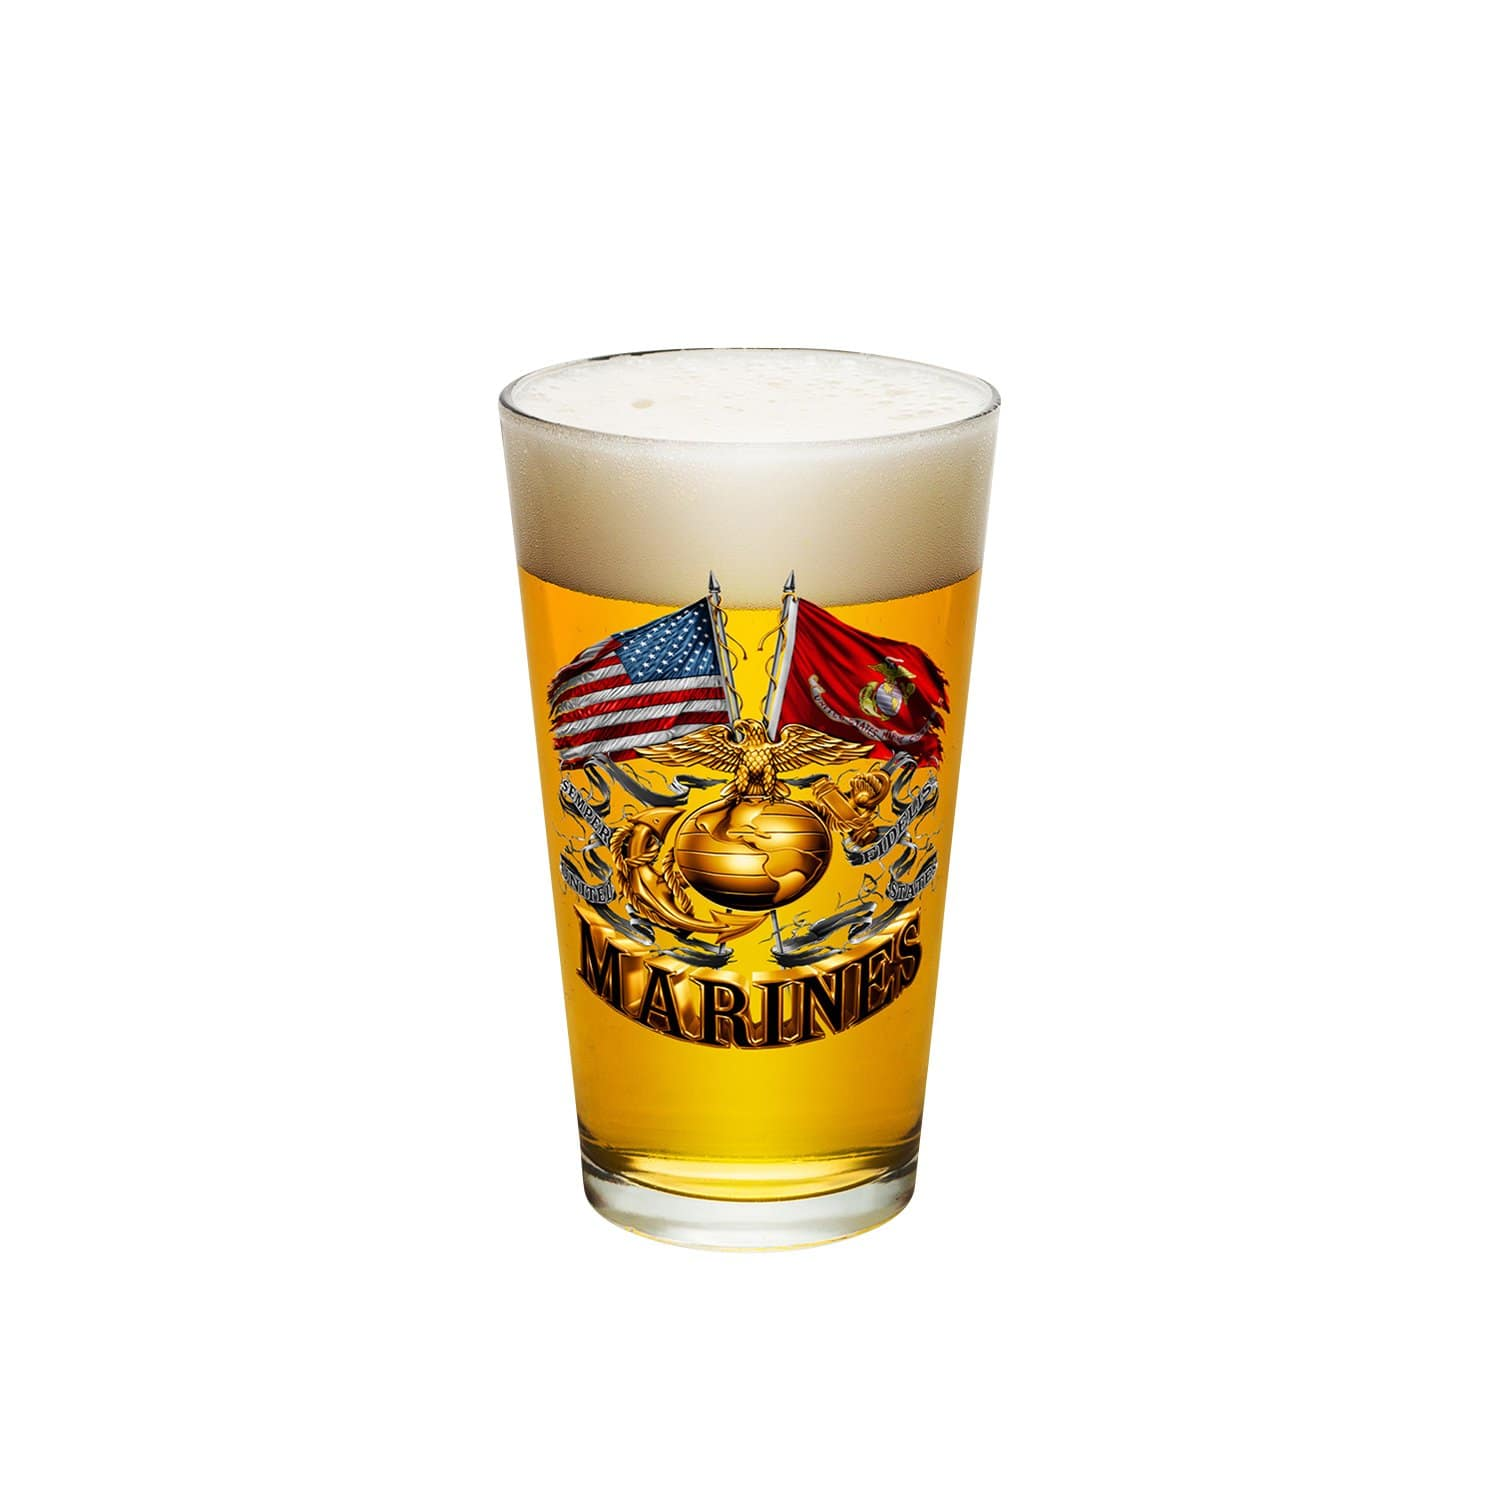 Double Flag Gold Globe Marine Corps Pint Glass